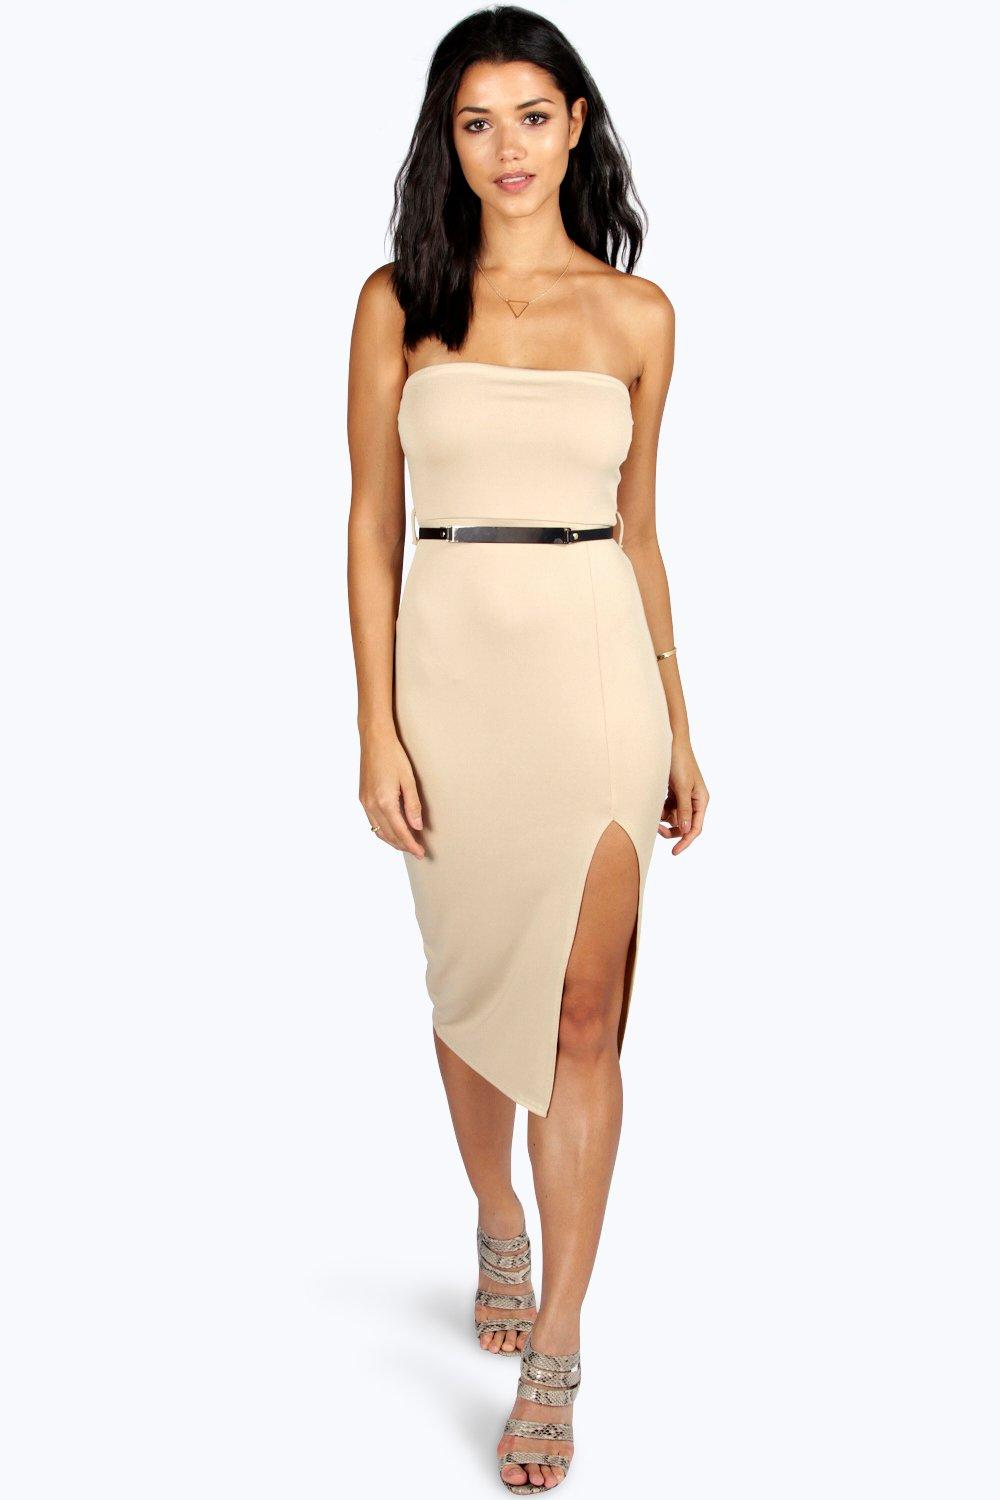 Claire Bandeau Belted Midi Bodycon Dress